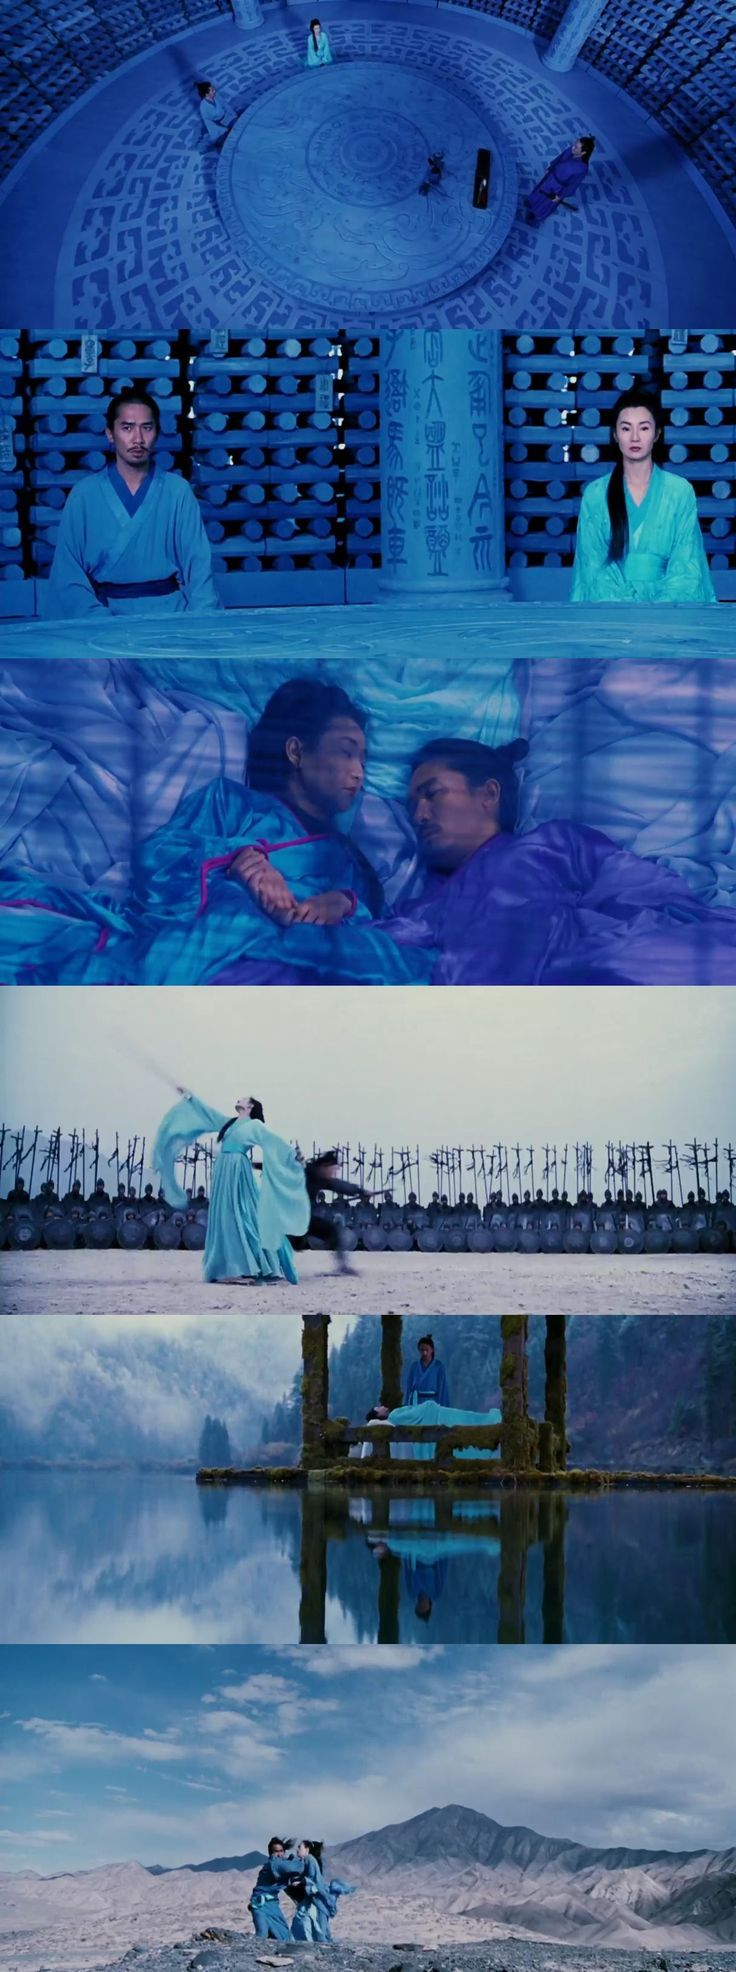 Hero (2002) Yimou Zhang Costume designer: Emi Wada Estante da Sala. If you like UX, design, or design thinking, check out theuxblog.com